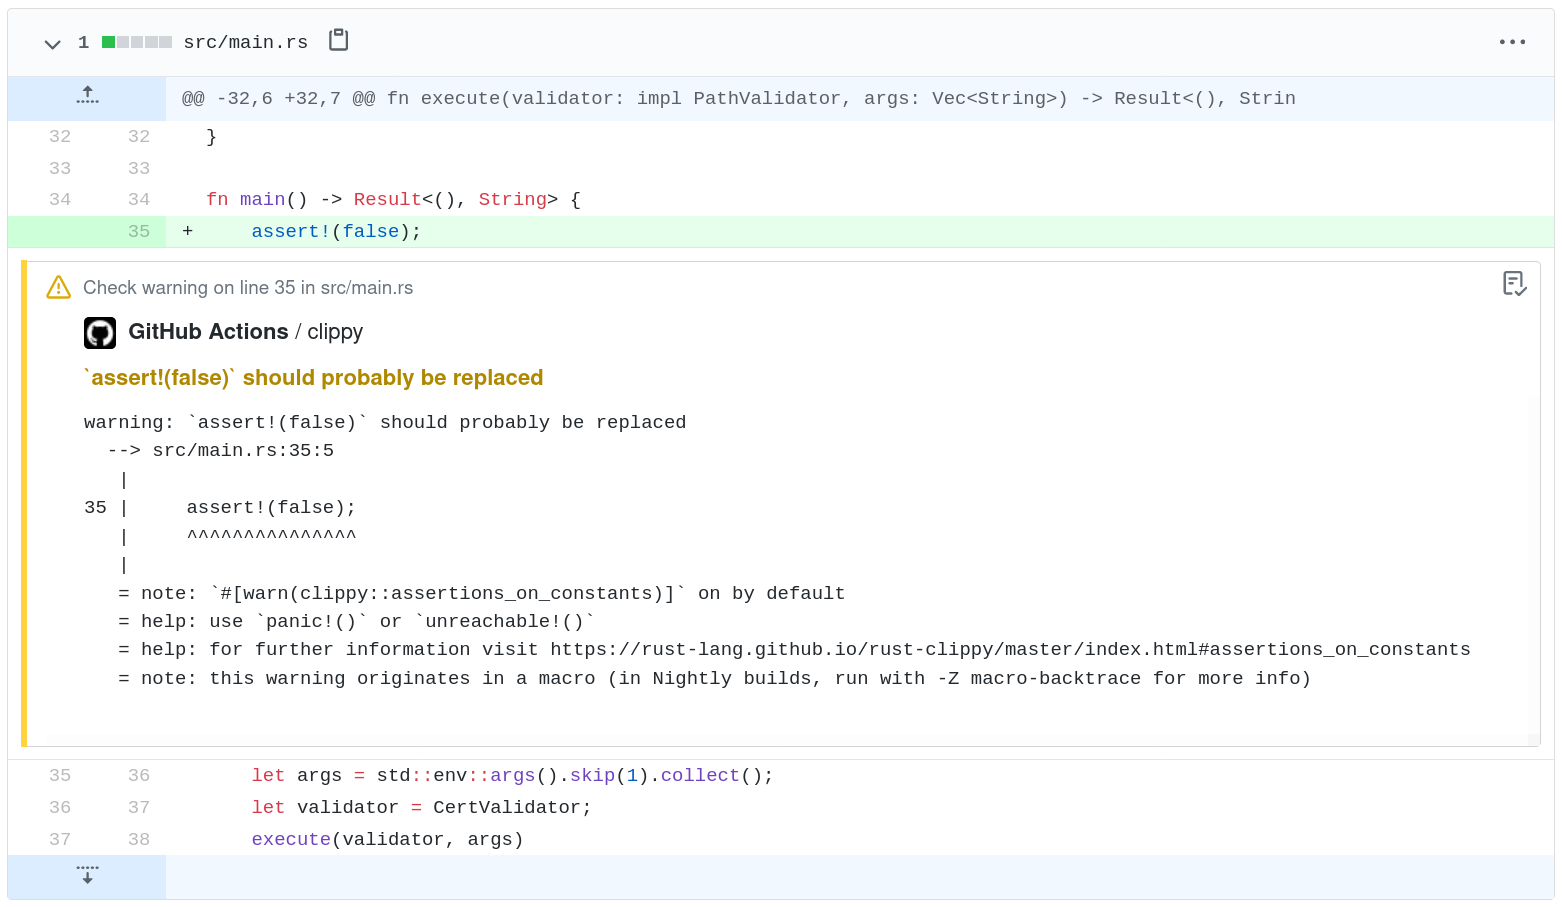 Single clippy warning in github actions.